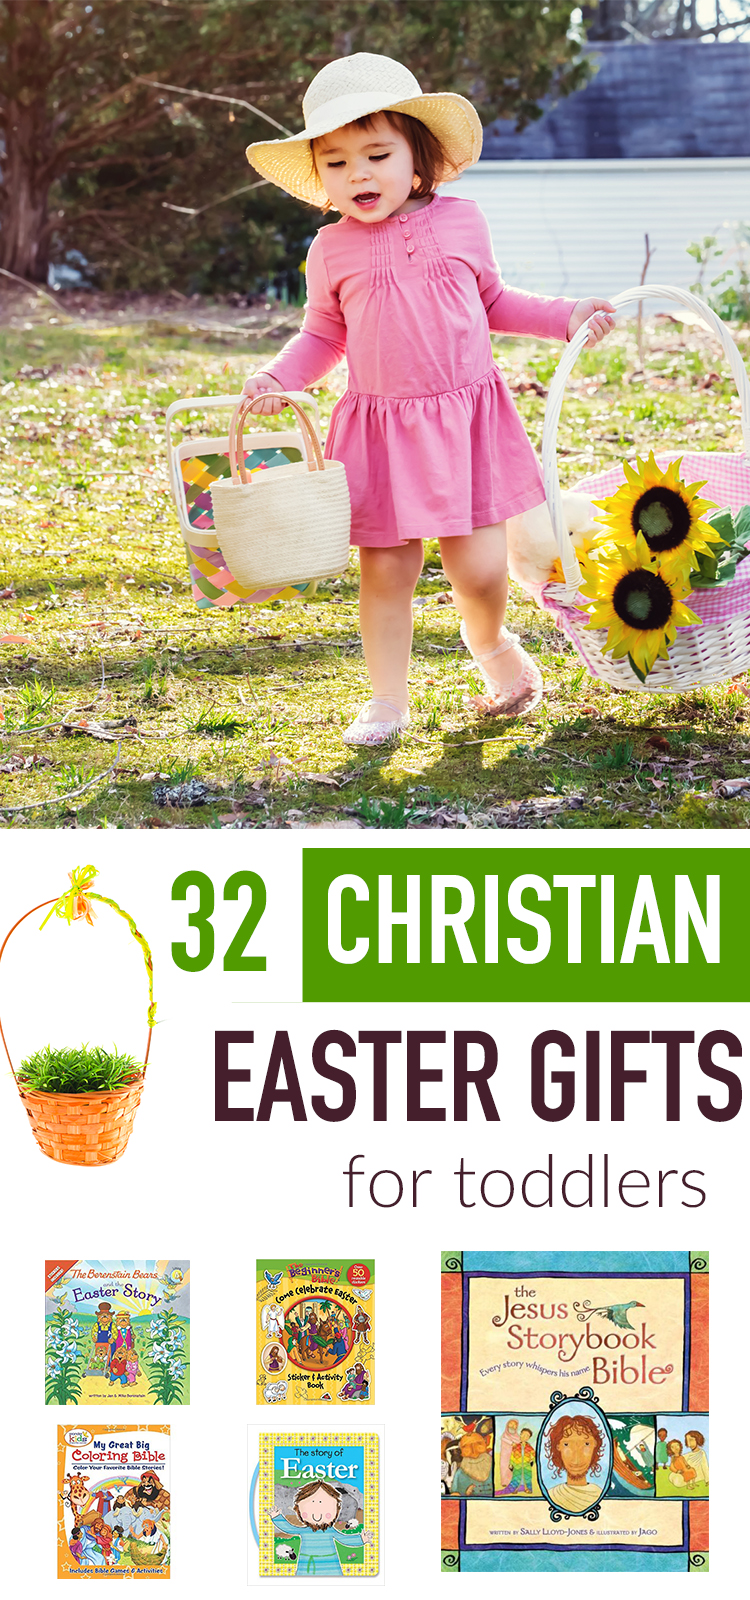 easter baskets toddlers | easter ideas toddlers | easter gifts for toddlers | easter gifts toddlers | cute easter gifts toddlers | easter gifts children | easter gifts toddler boys | easter gifts toddler girls | toddler easter basket stuffers | baby easter baske